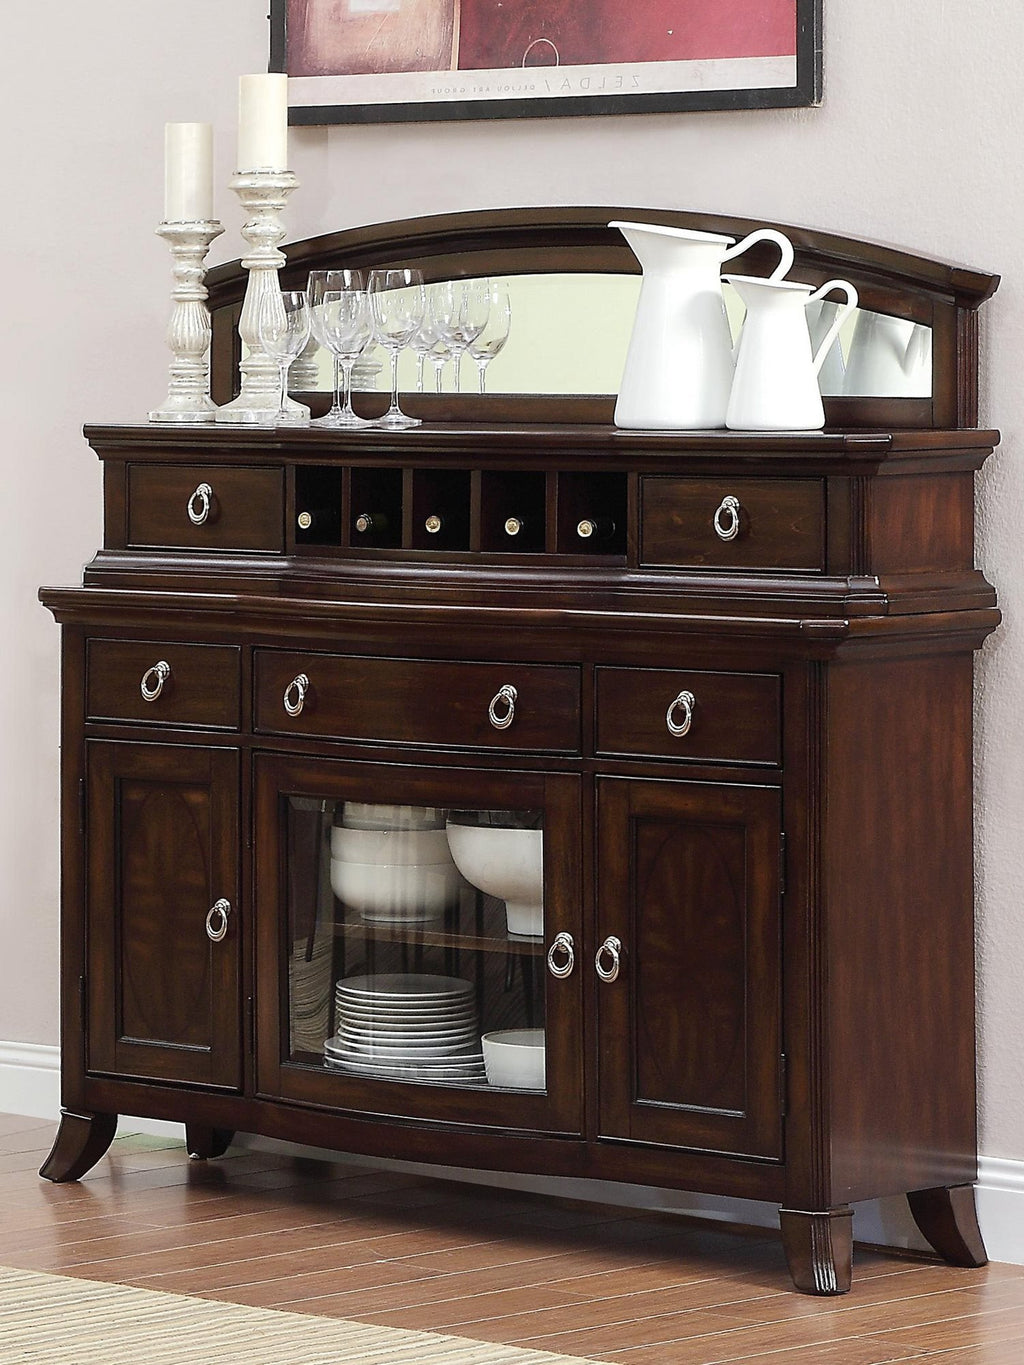 Homelegance Keegan Asian Server in Rich Brown Cherry